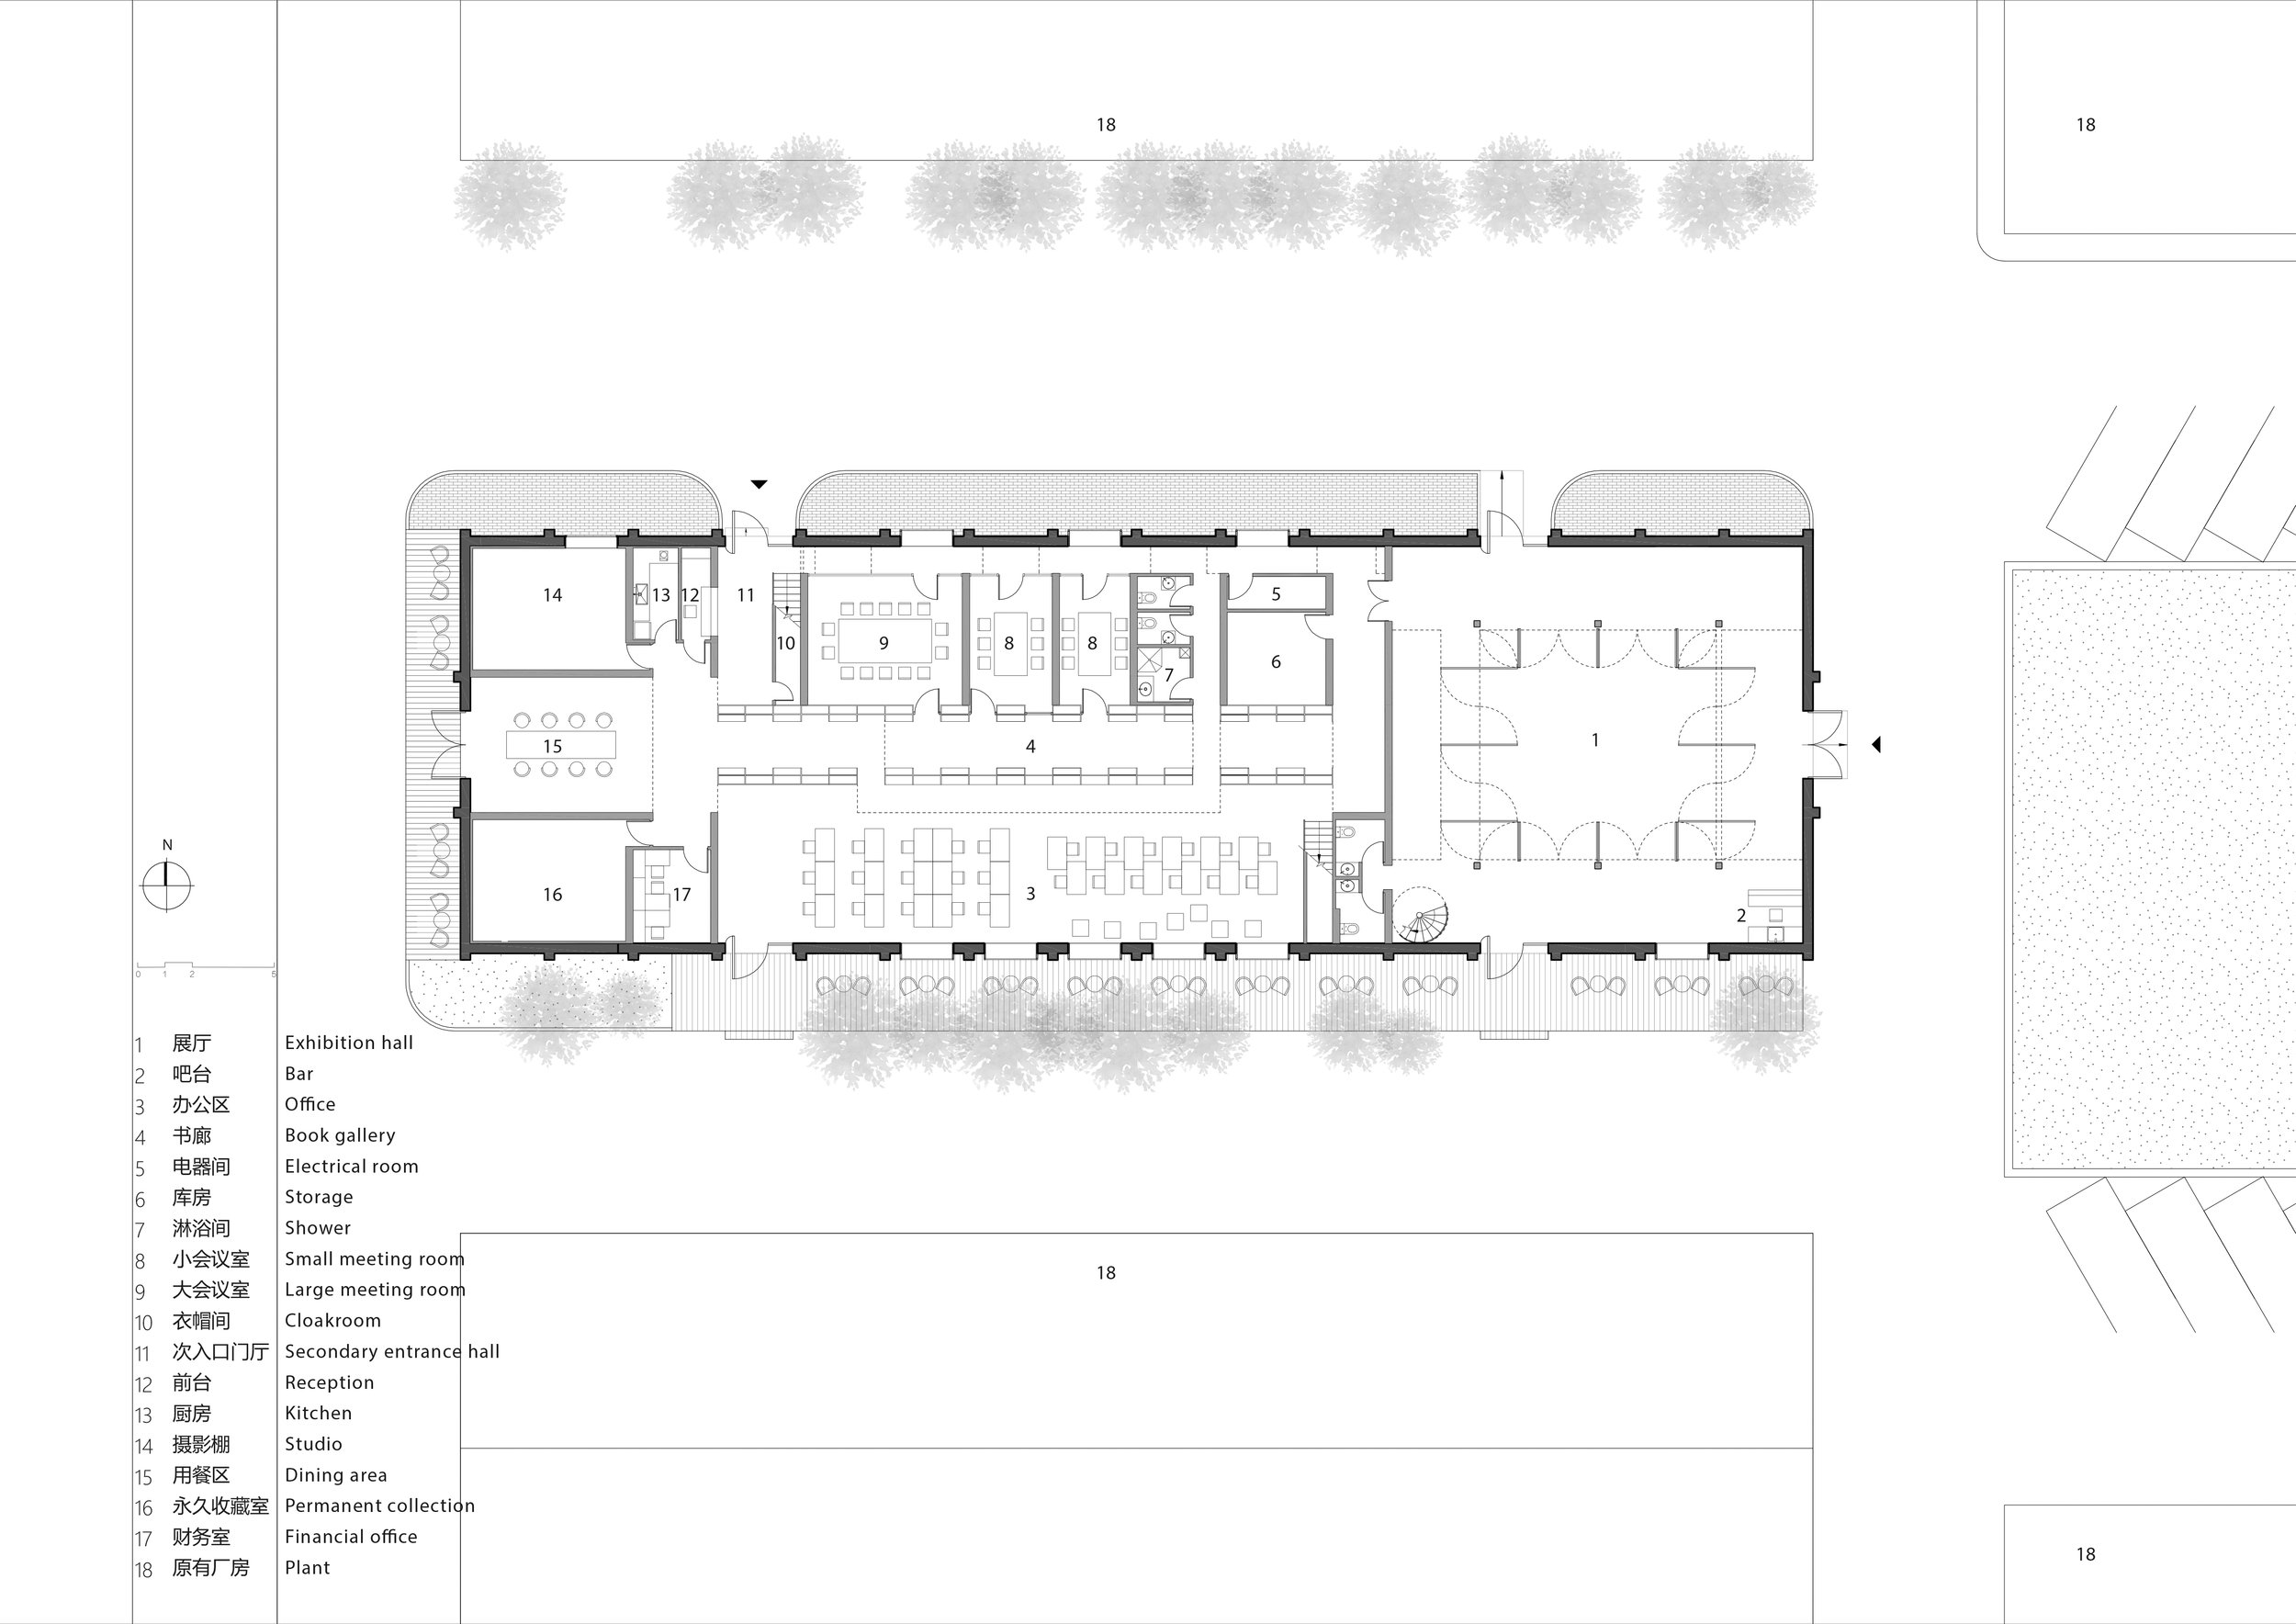 1st floor plan (ground floor).jpg